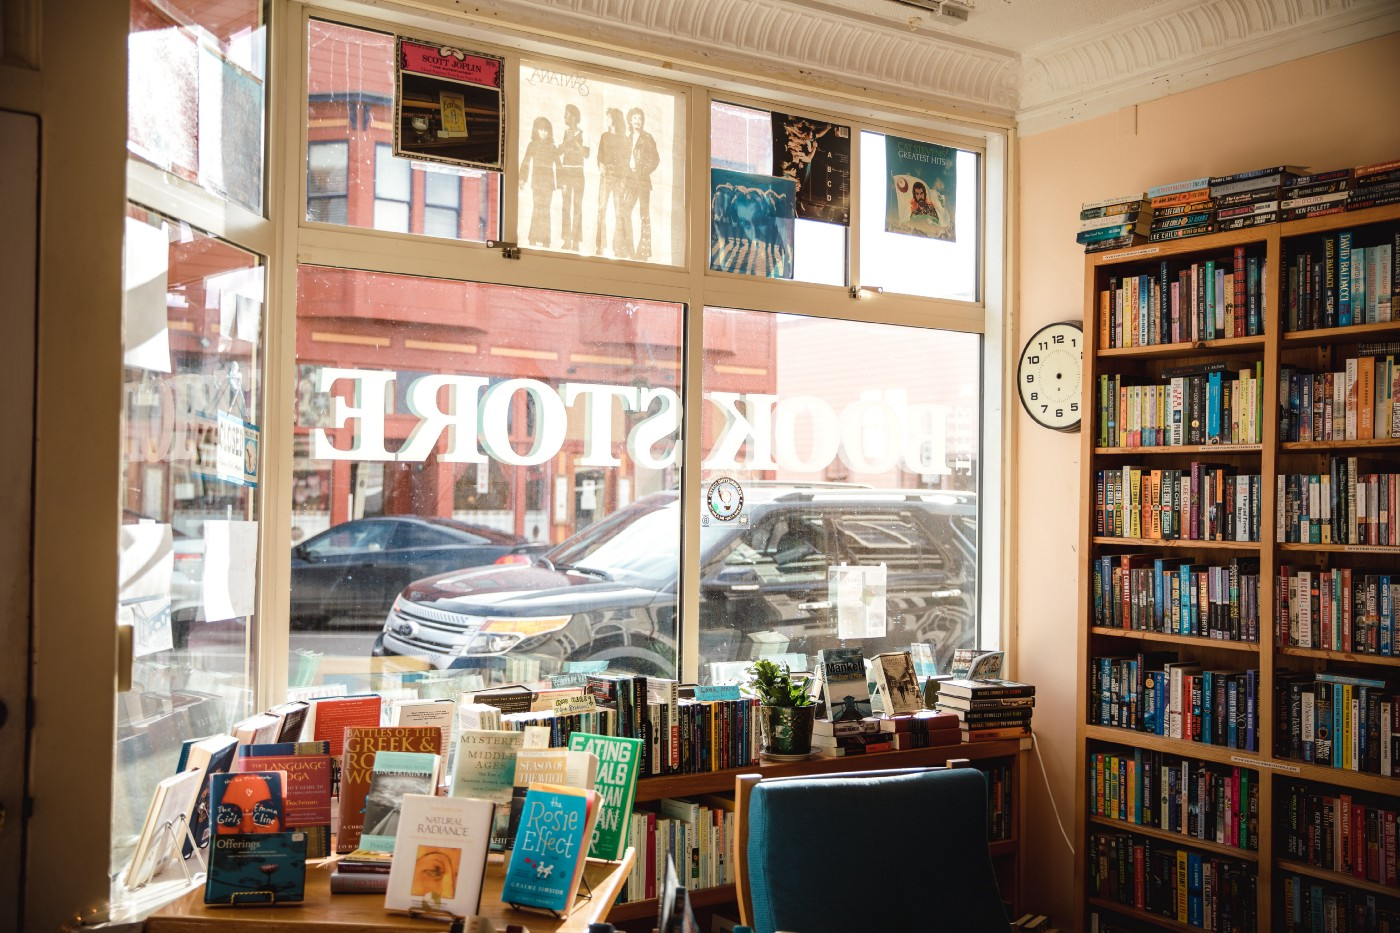 A view from inside a bookstore out the front window into the daylit street beyond, with tables and shelves full of book in the foreground.